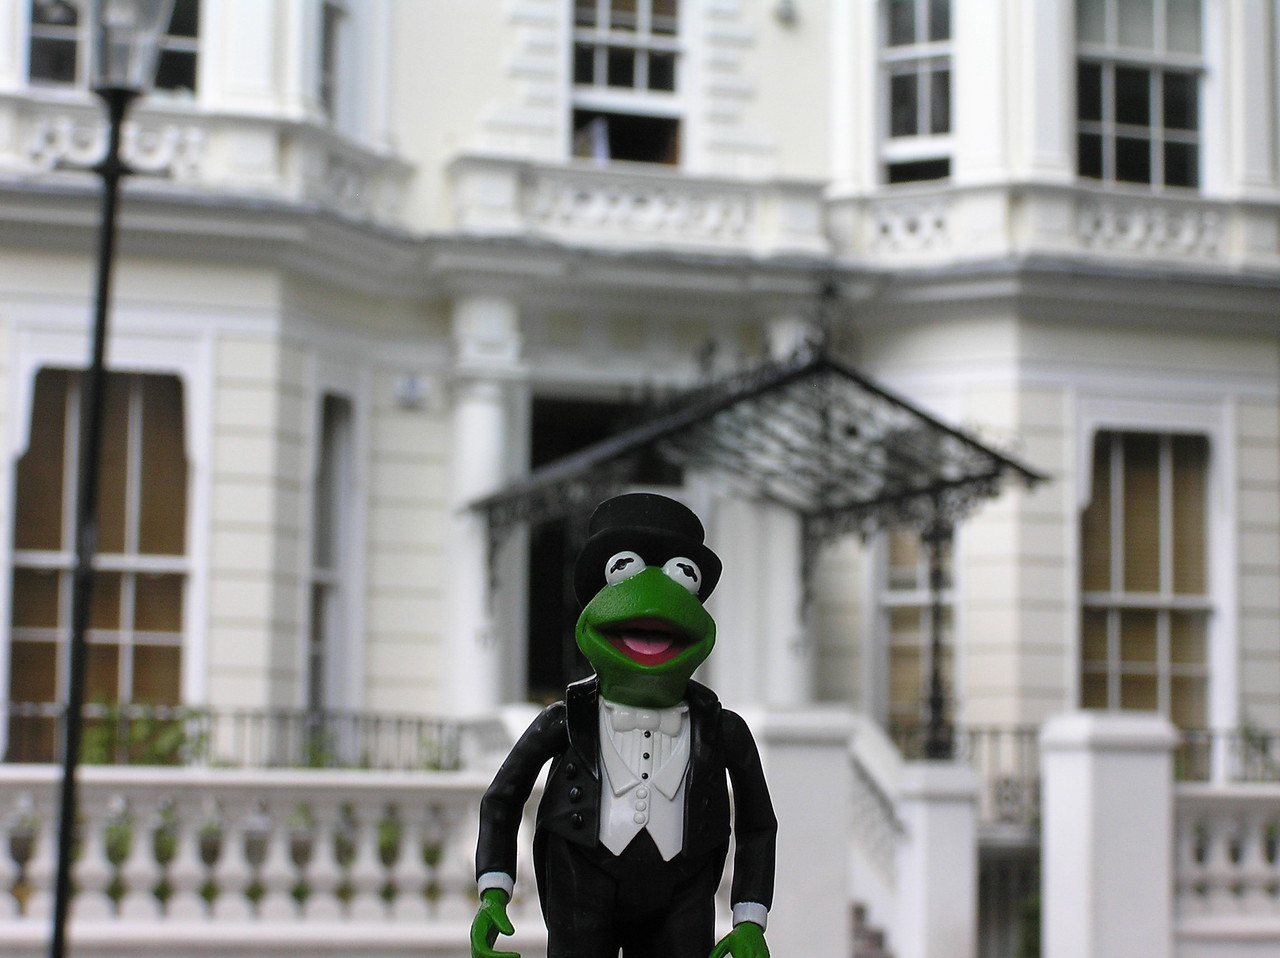 Kermit, dressed in his tuxedo, picks up Miss Piggy on their way to the Dubonnet Club.